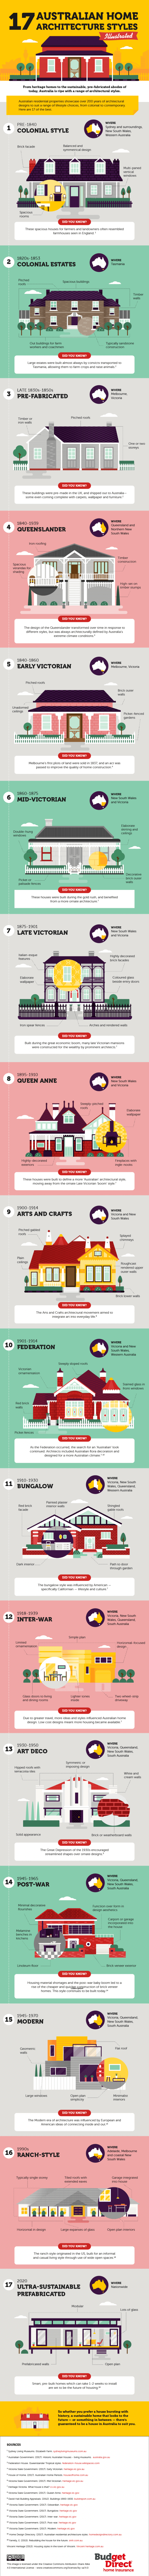 Check Out This Infographic Brought To You By Budget Direct Home Insurance.  It Takes A Look At 17 Of The Countryu0027s Key Features In Home Architecture.